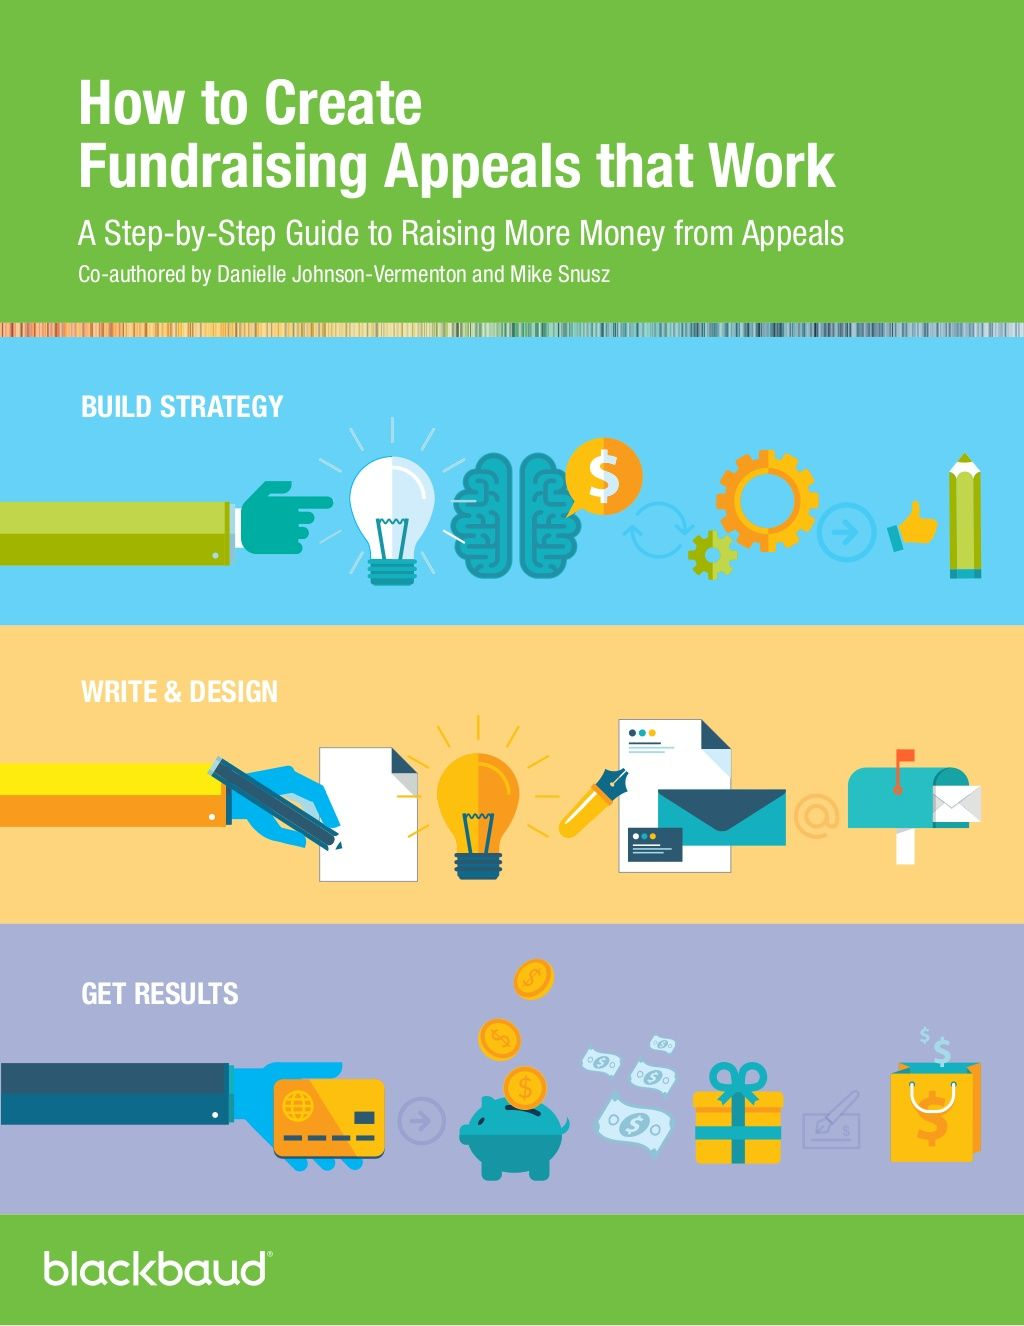 How To Write Fundraising Appeals That Work Guide By Blackbaud